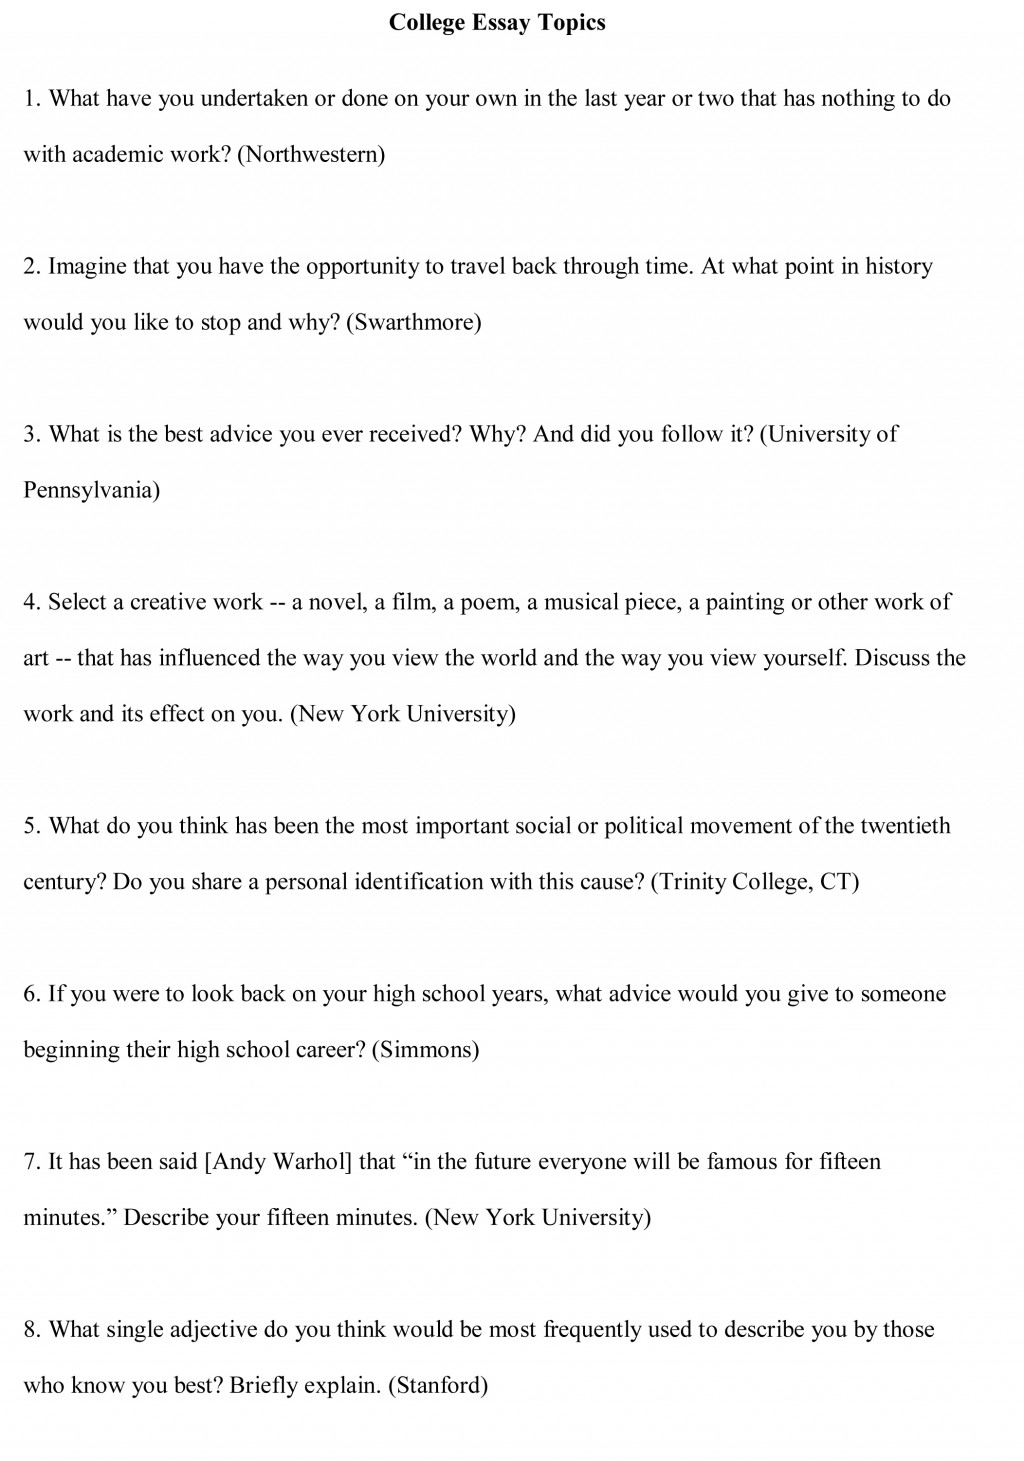 012 Essay Example College Topics Free Sample1 Magnificent Reworder Best Rewriter Software Download App Large